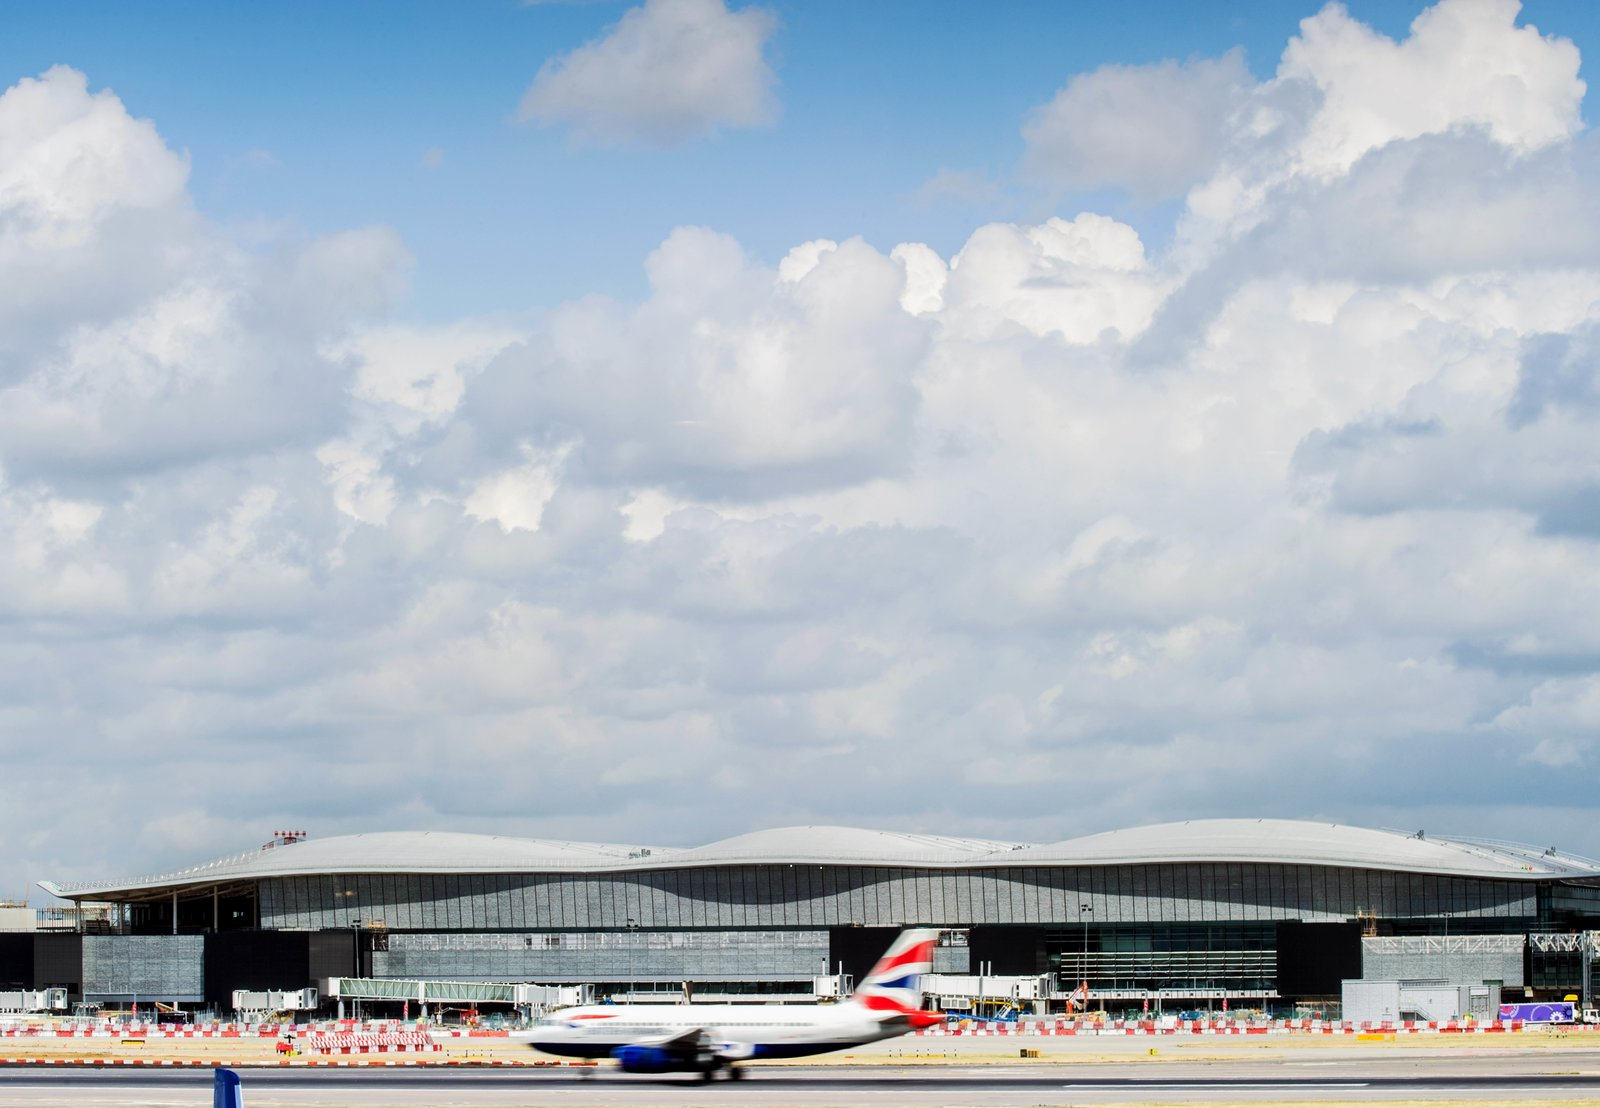 An exterior view of Terminal 2 at Heathrow Airport near London, designed by Luis Vidal + Architects, which opened in June 2014. The $4.15 billion terminal is expected to handle 20 million passengers a year.  Jet Set: 8 Modern Airport Designs by William Lamb from Exhibit Spotlights the Work of Spanish Architect Luis Vidal